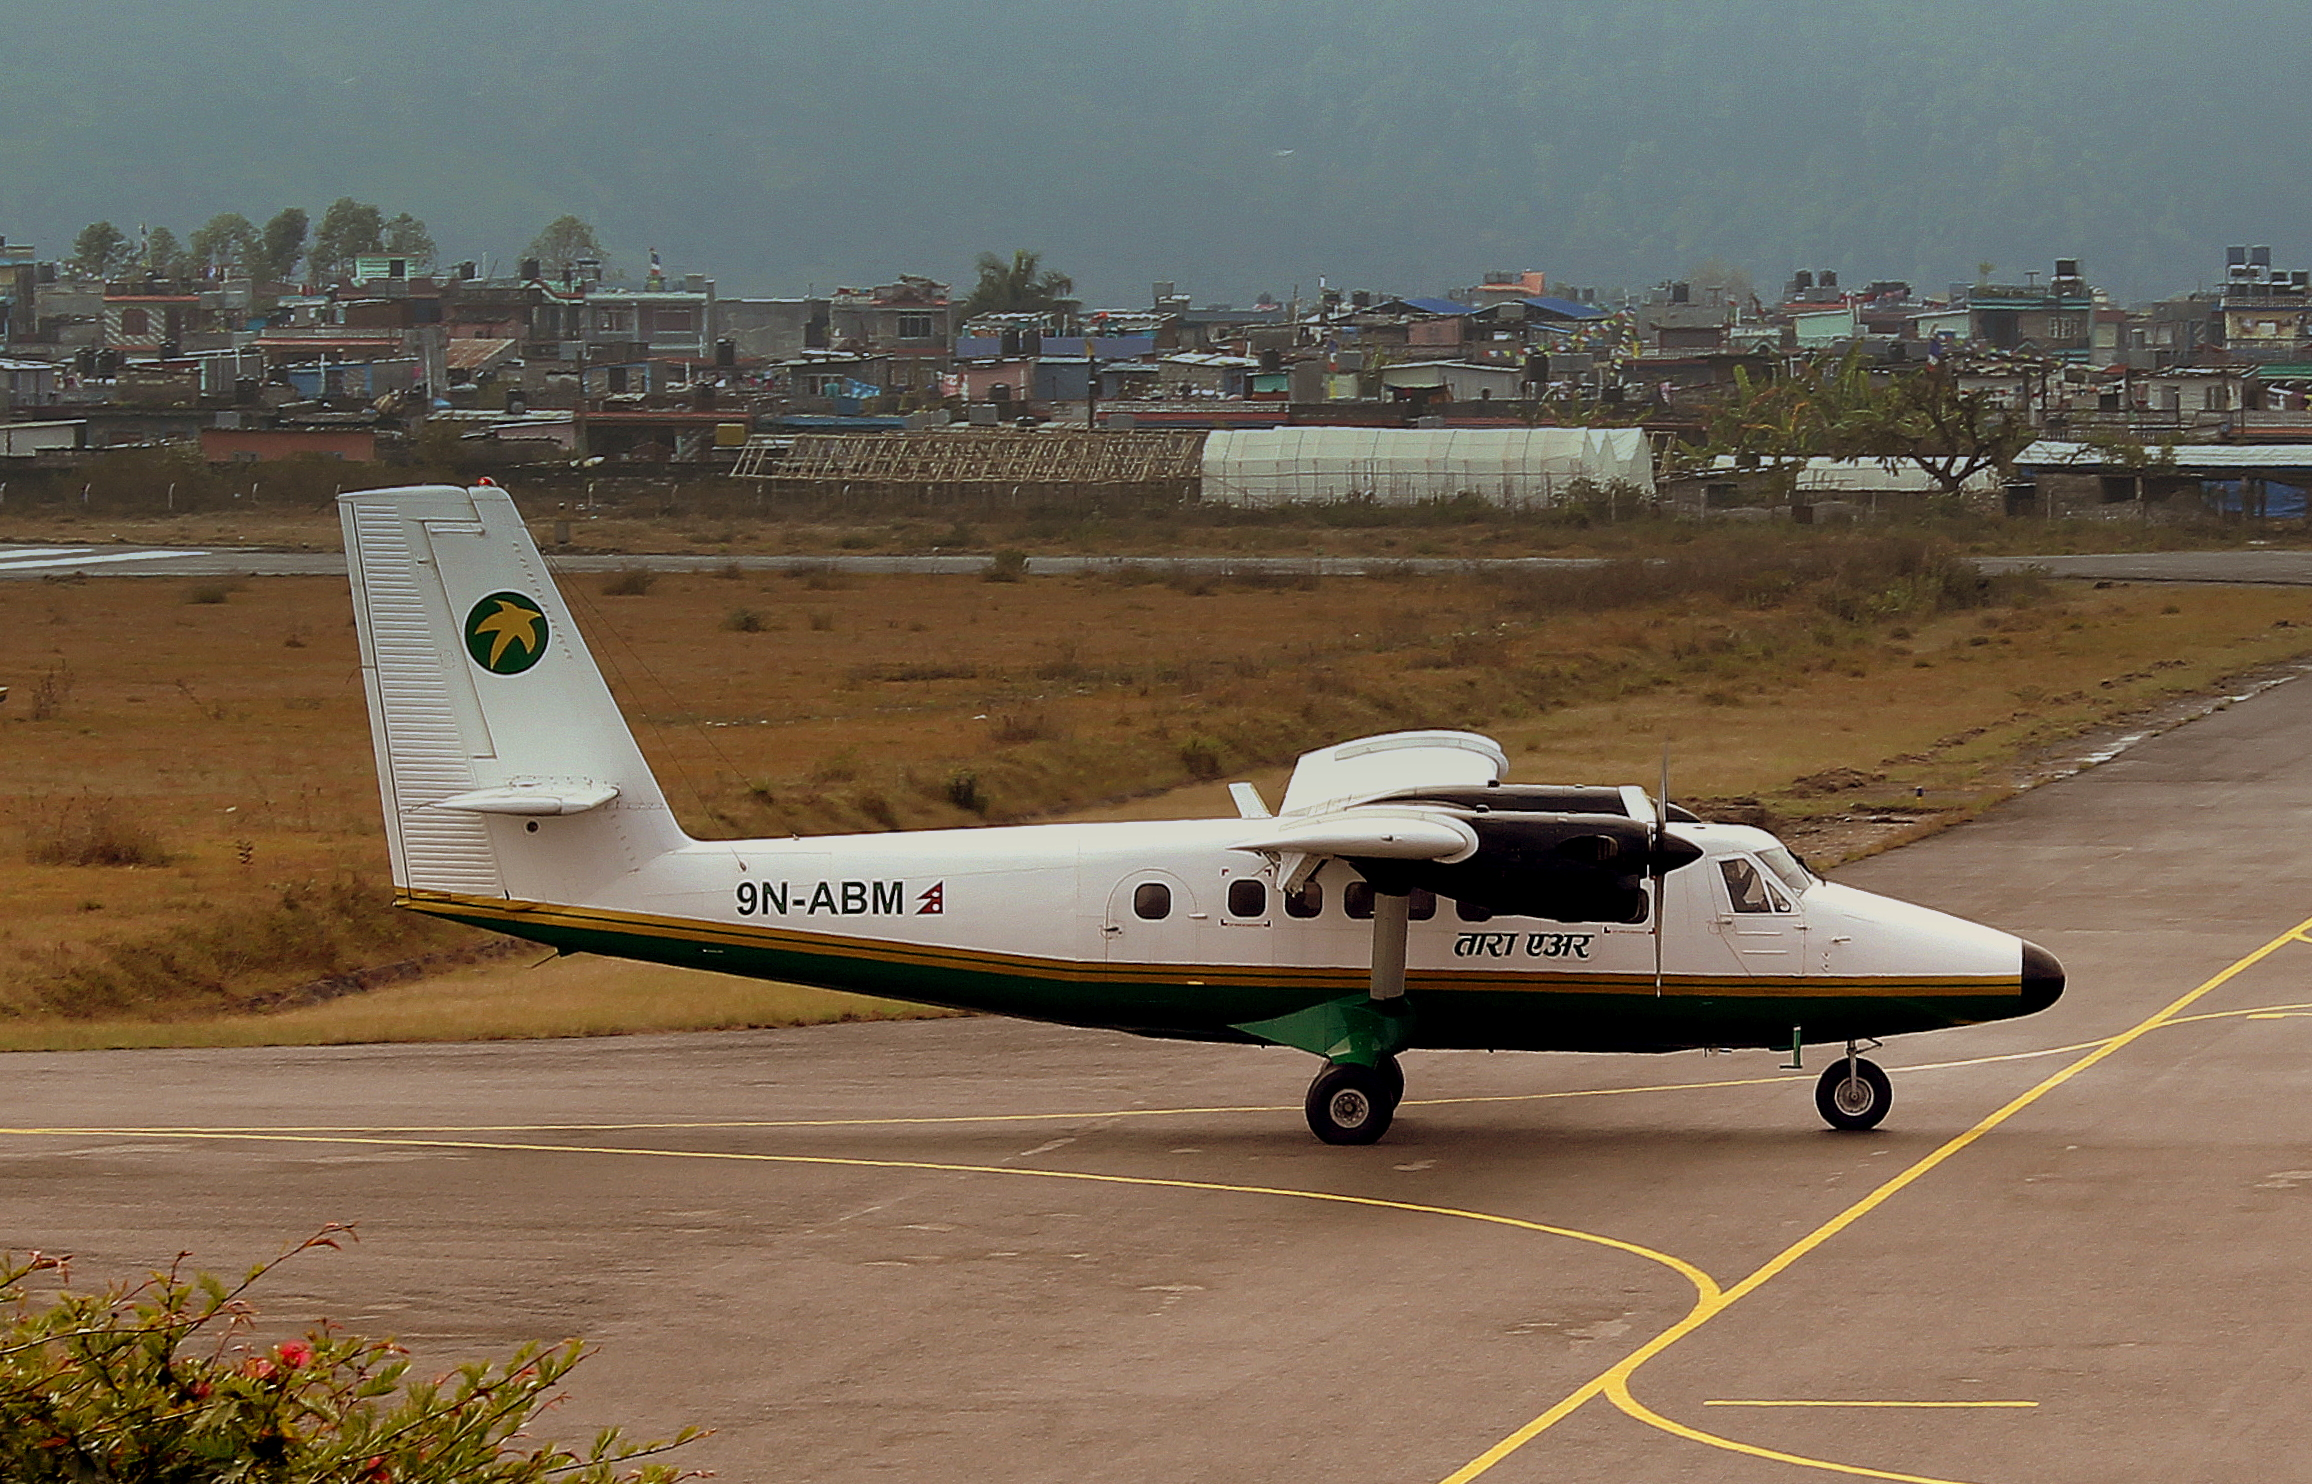 9n-abm_tara_air_dhc_6_twin_otter_at_pokhara_recently_arrived_from_jomson_airport_nepal_feb_2013_8569369692.jpg